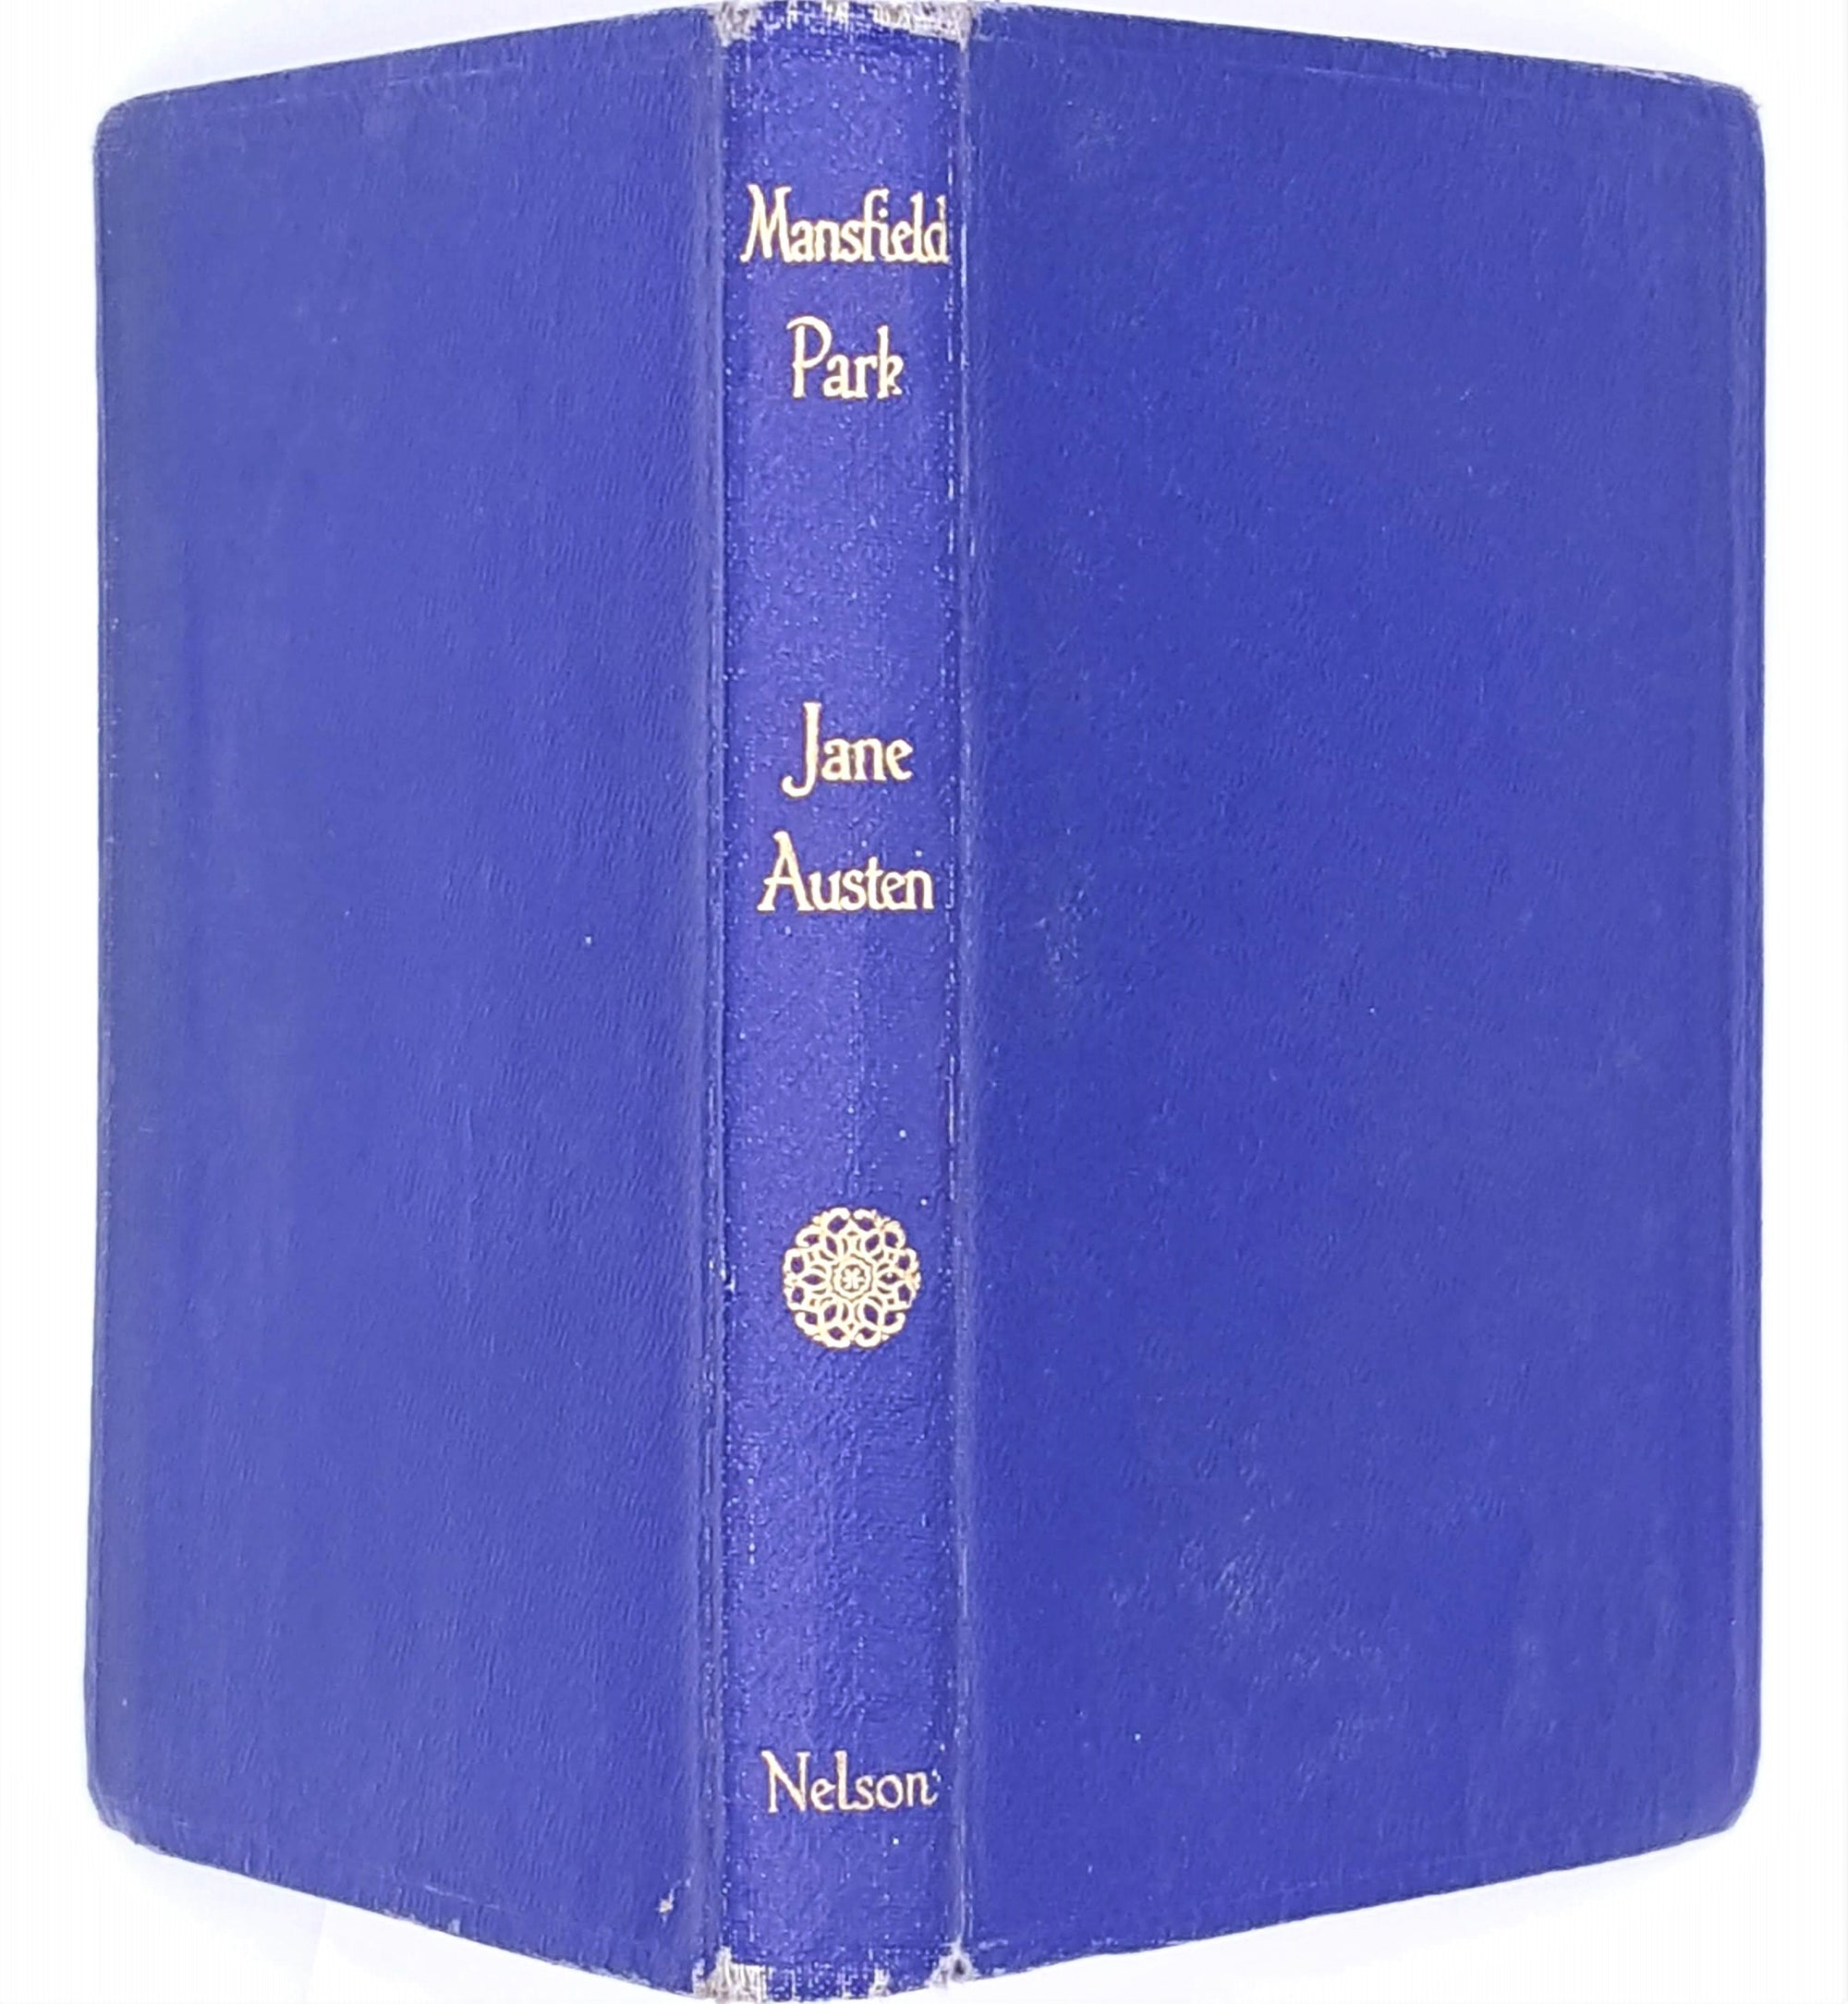 mansfield-park-nelson-classic-thrift-blue-books-old-decorative-antique-patterned-country-house-library-vintage-jane-austen-